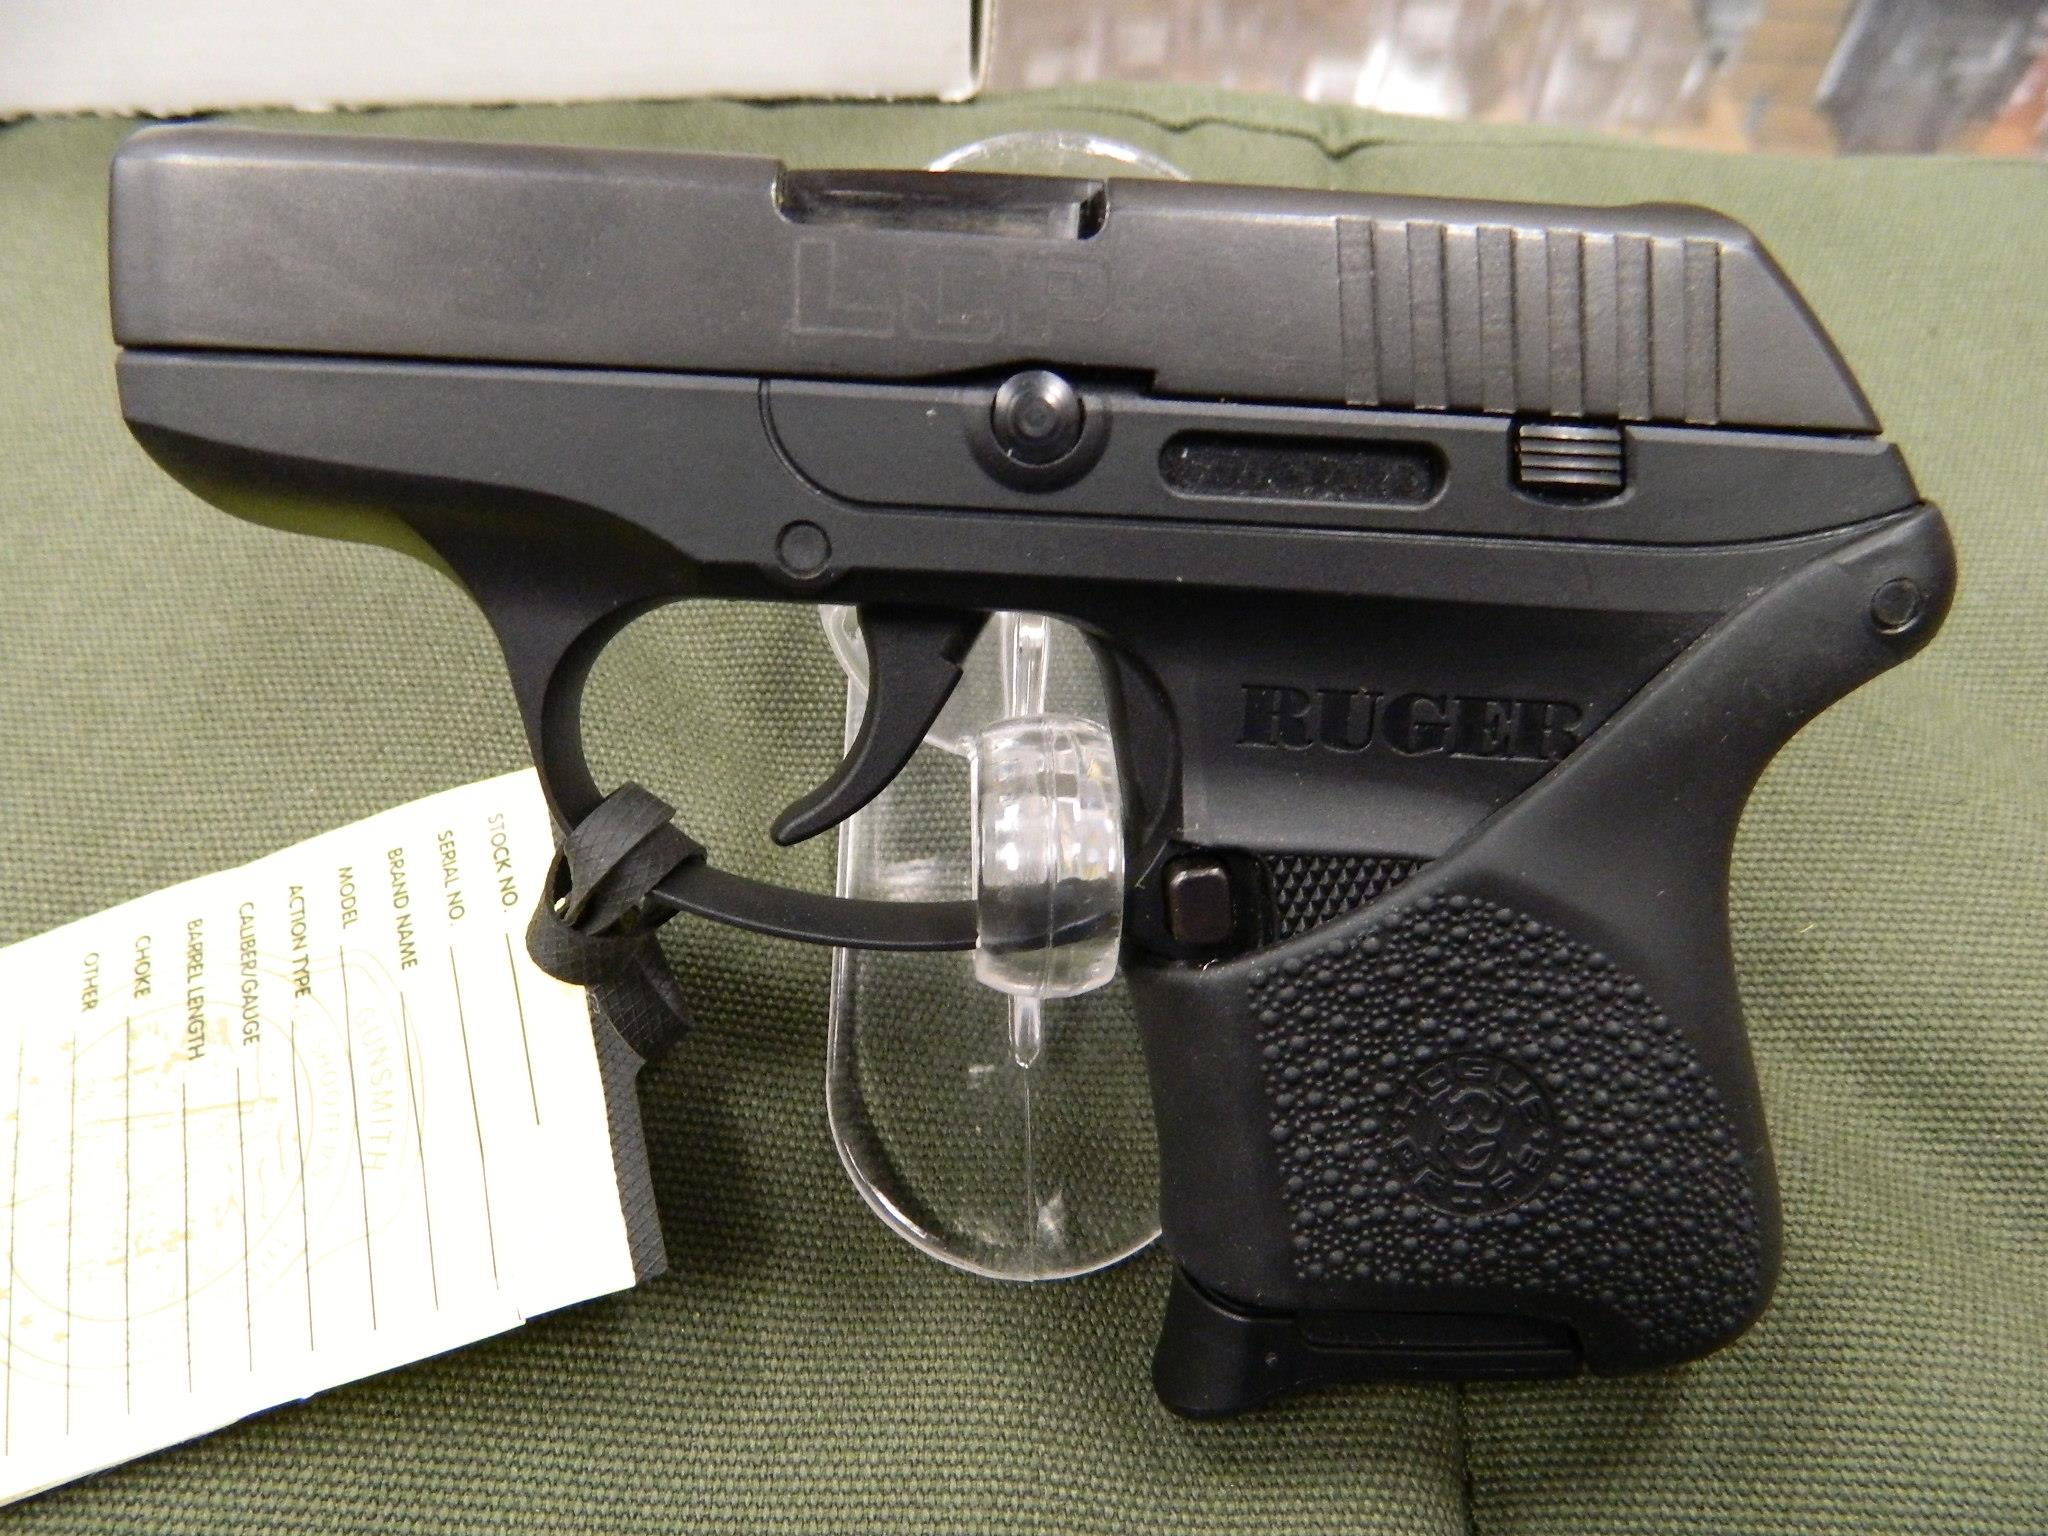 Ruger LCP with Hogue grip  Guns > Pistols > Ruger Semi-Auto Pistols > LCP